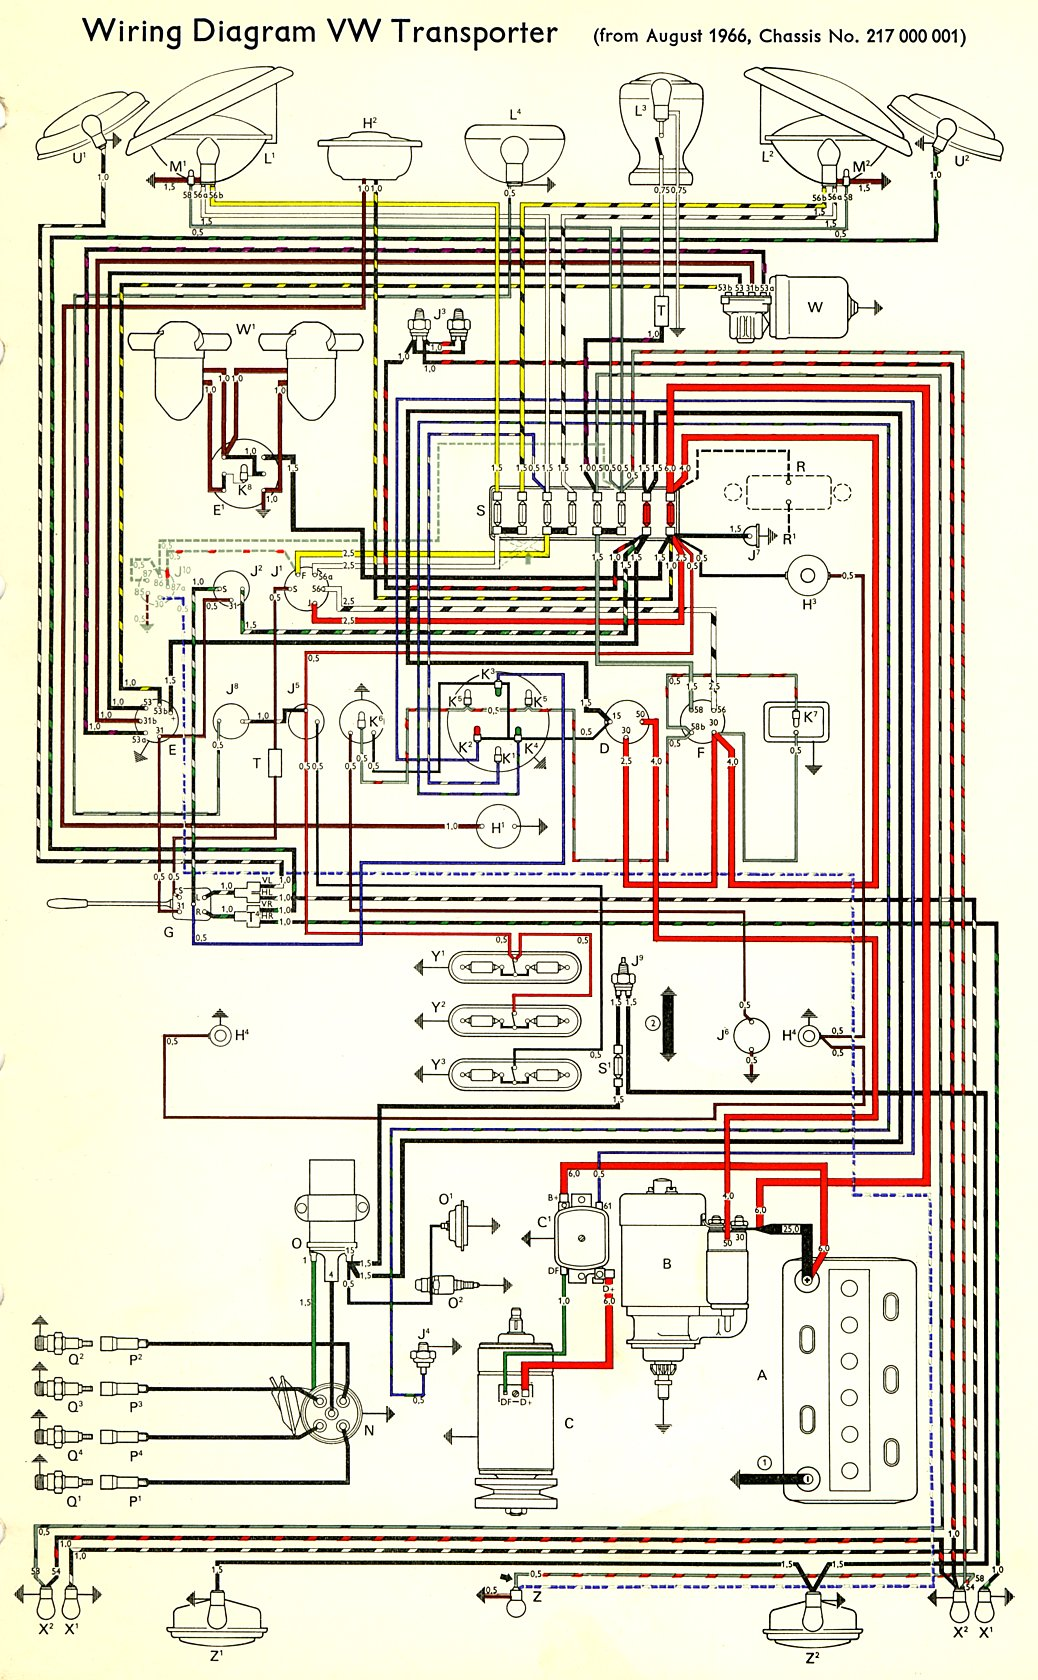 bus_67 1967 bus wiring diagram thegoldenbug com Volkswagen Type 2 Wiring Harness at mifinder.co